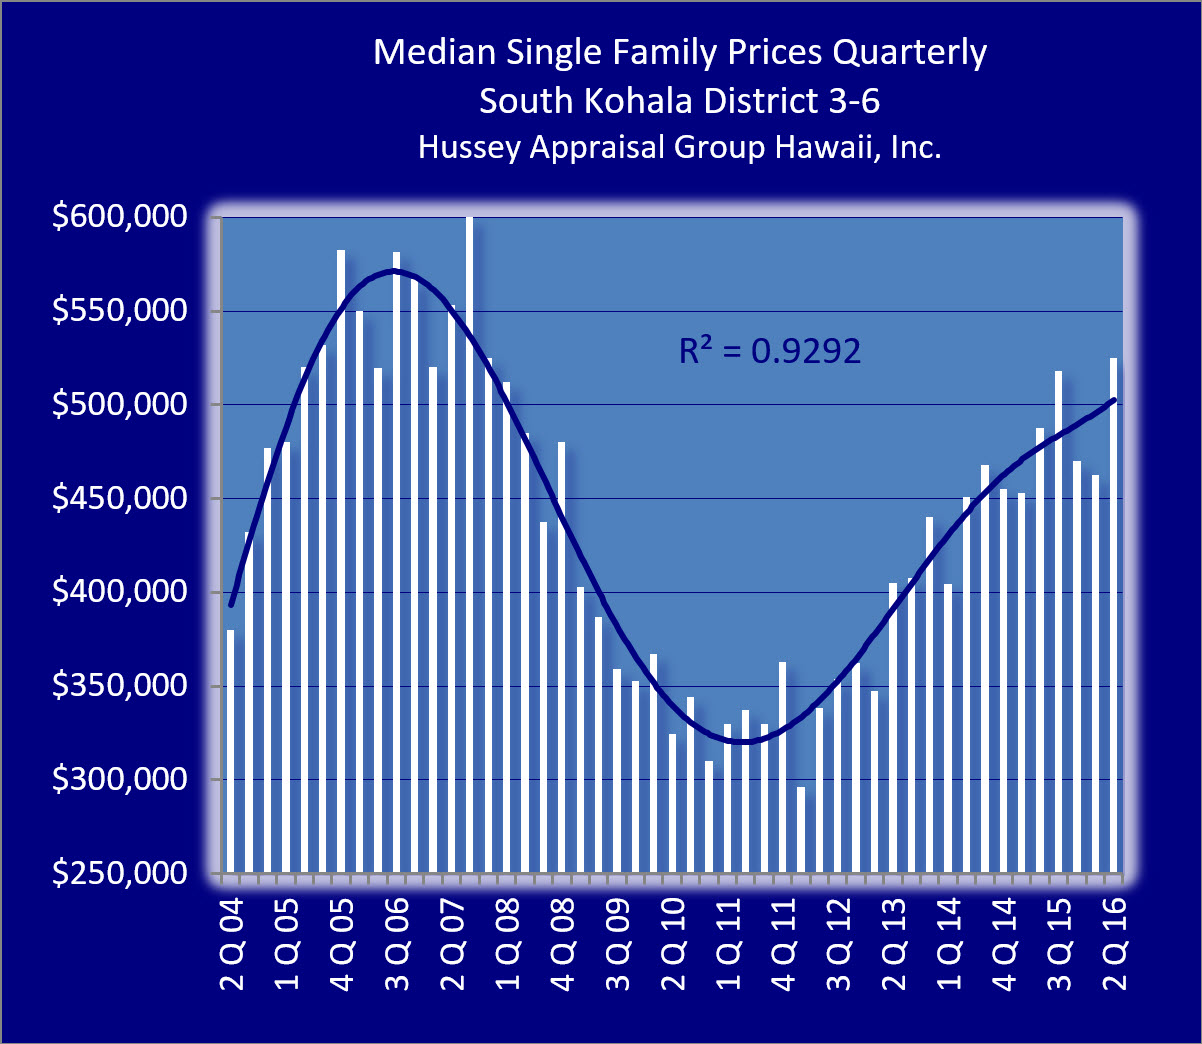 Big Island Real Estate Prices Near Record High